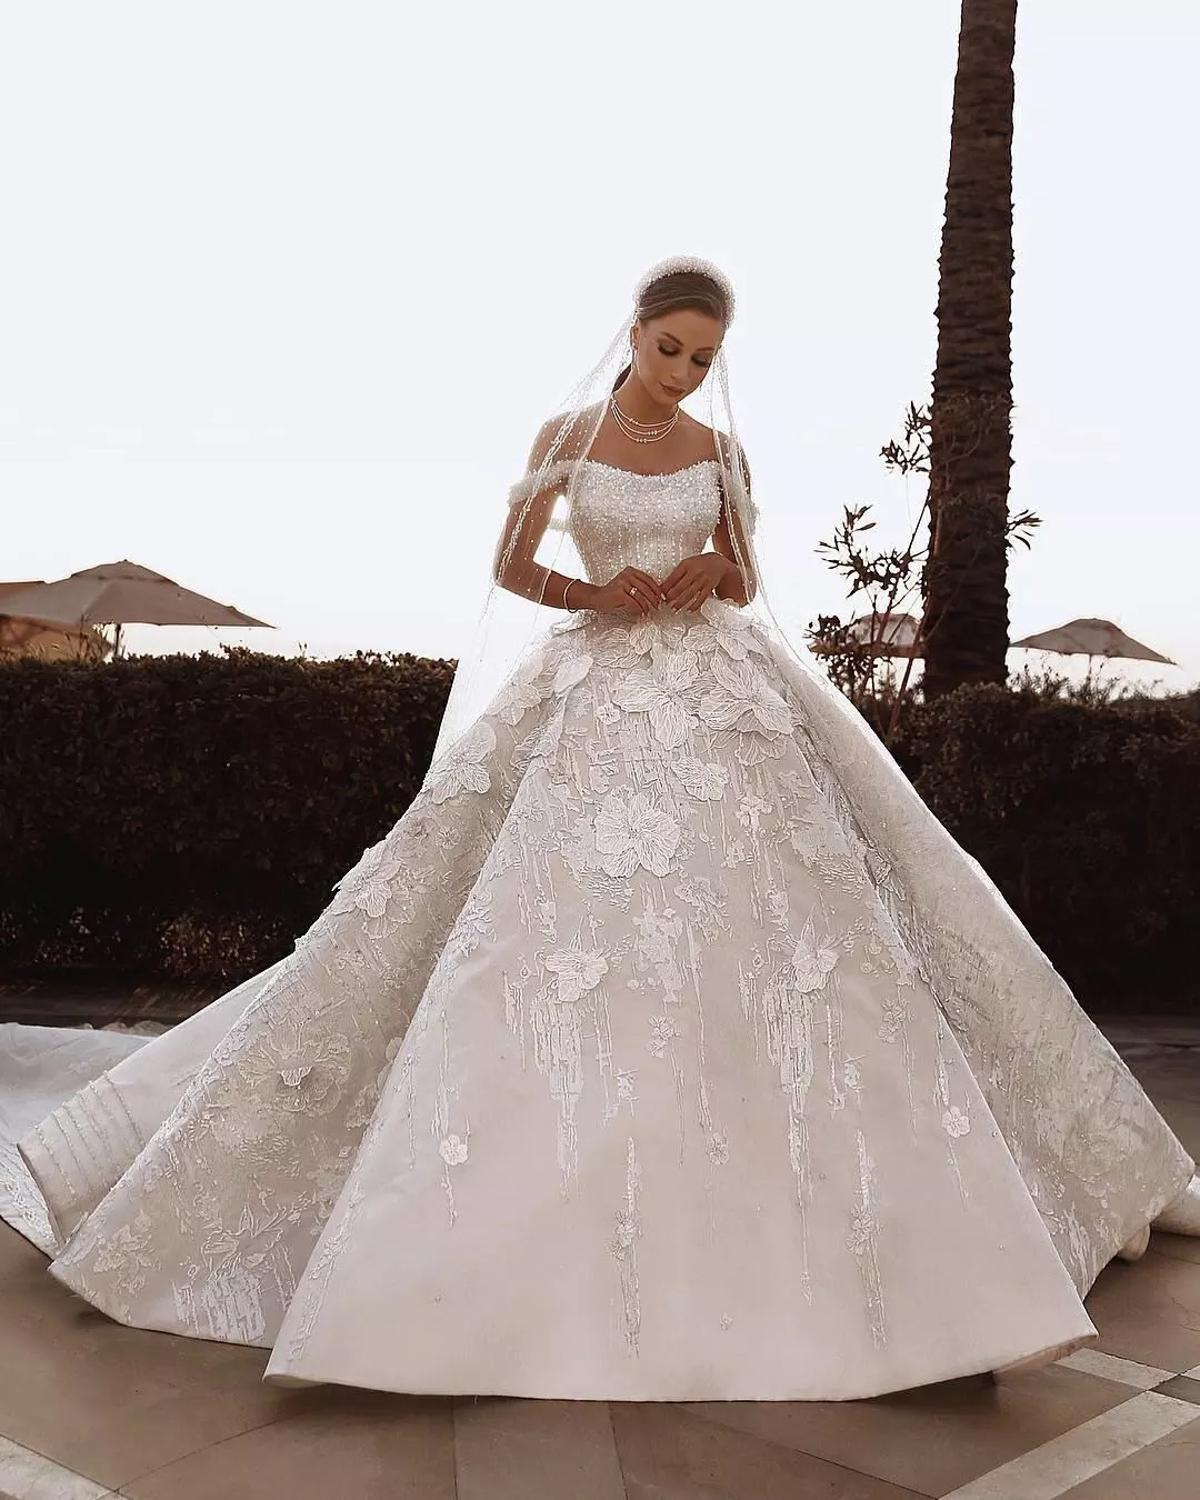 Vestidos De Noiva Luxury A Line Wedding Dresses V Neck Crystal Beading Bridal Gown Beaded Lace